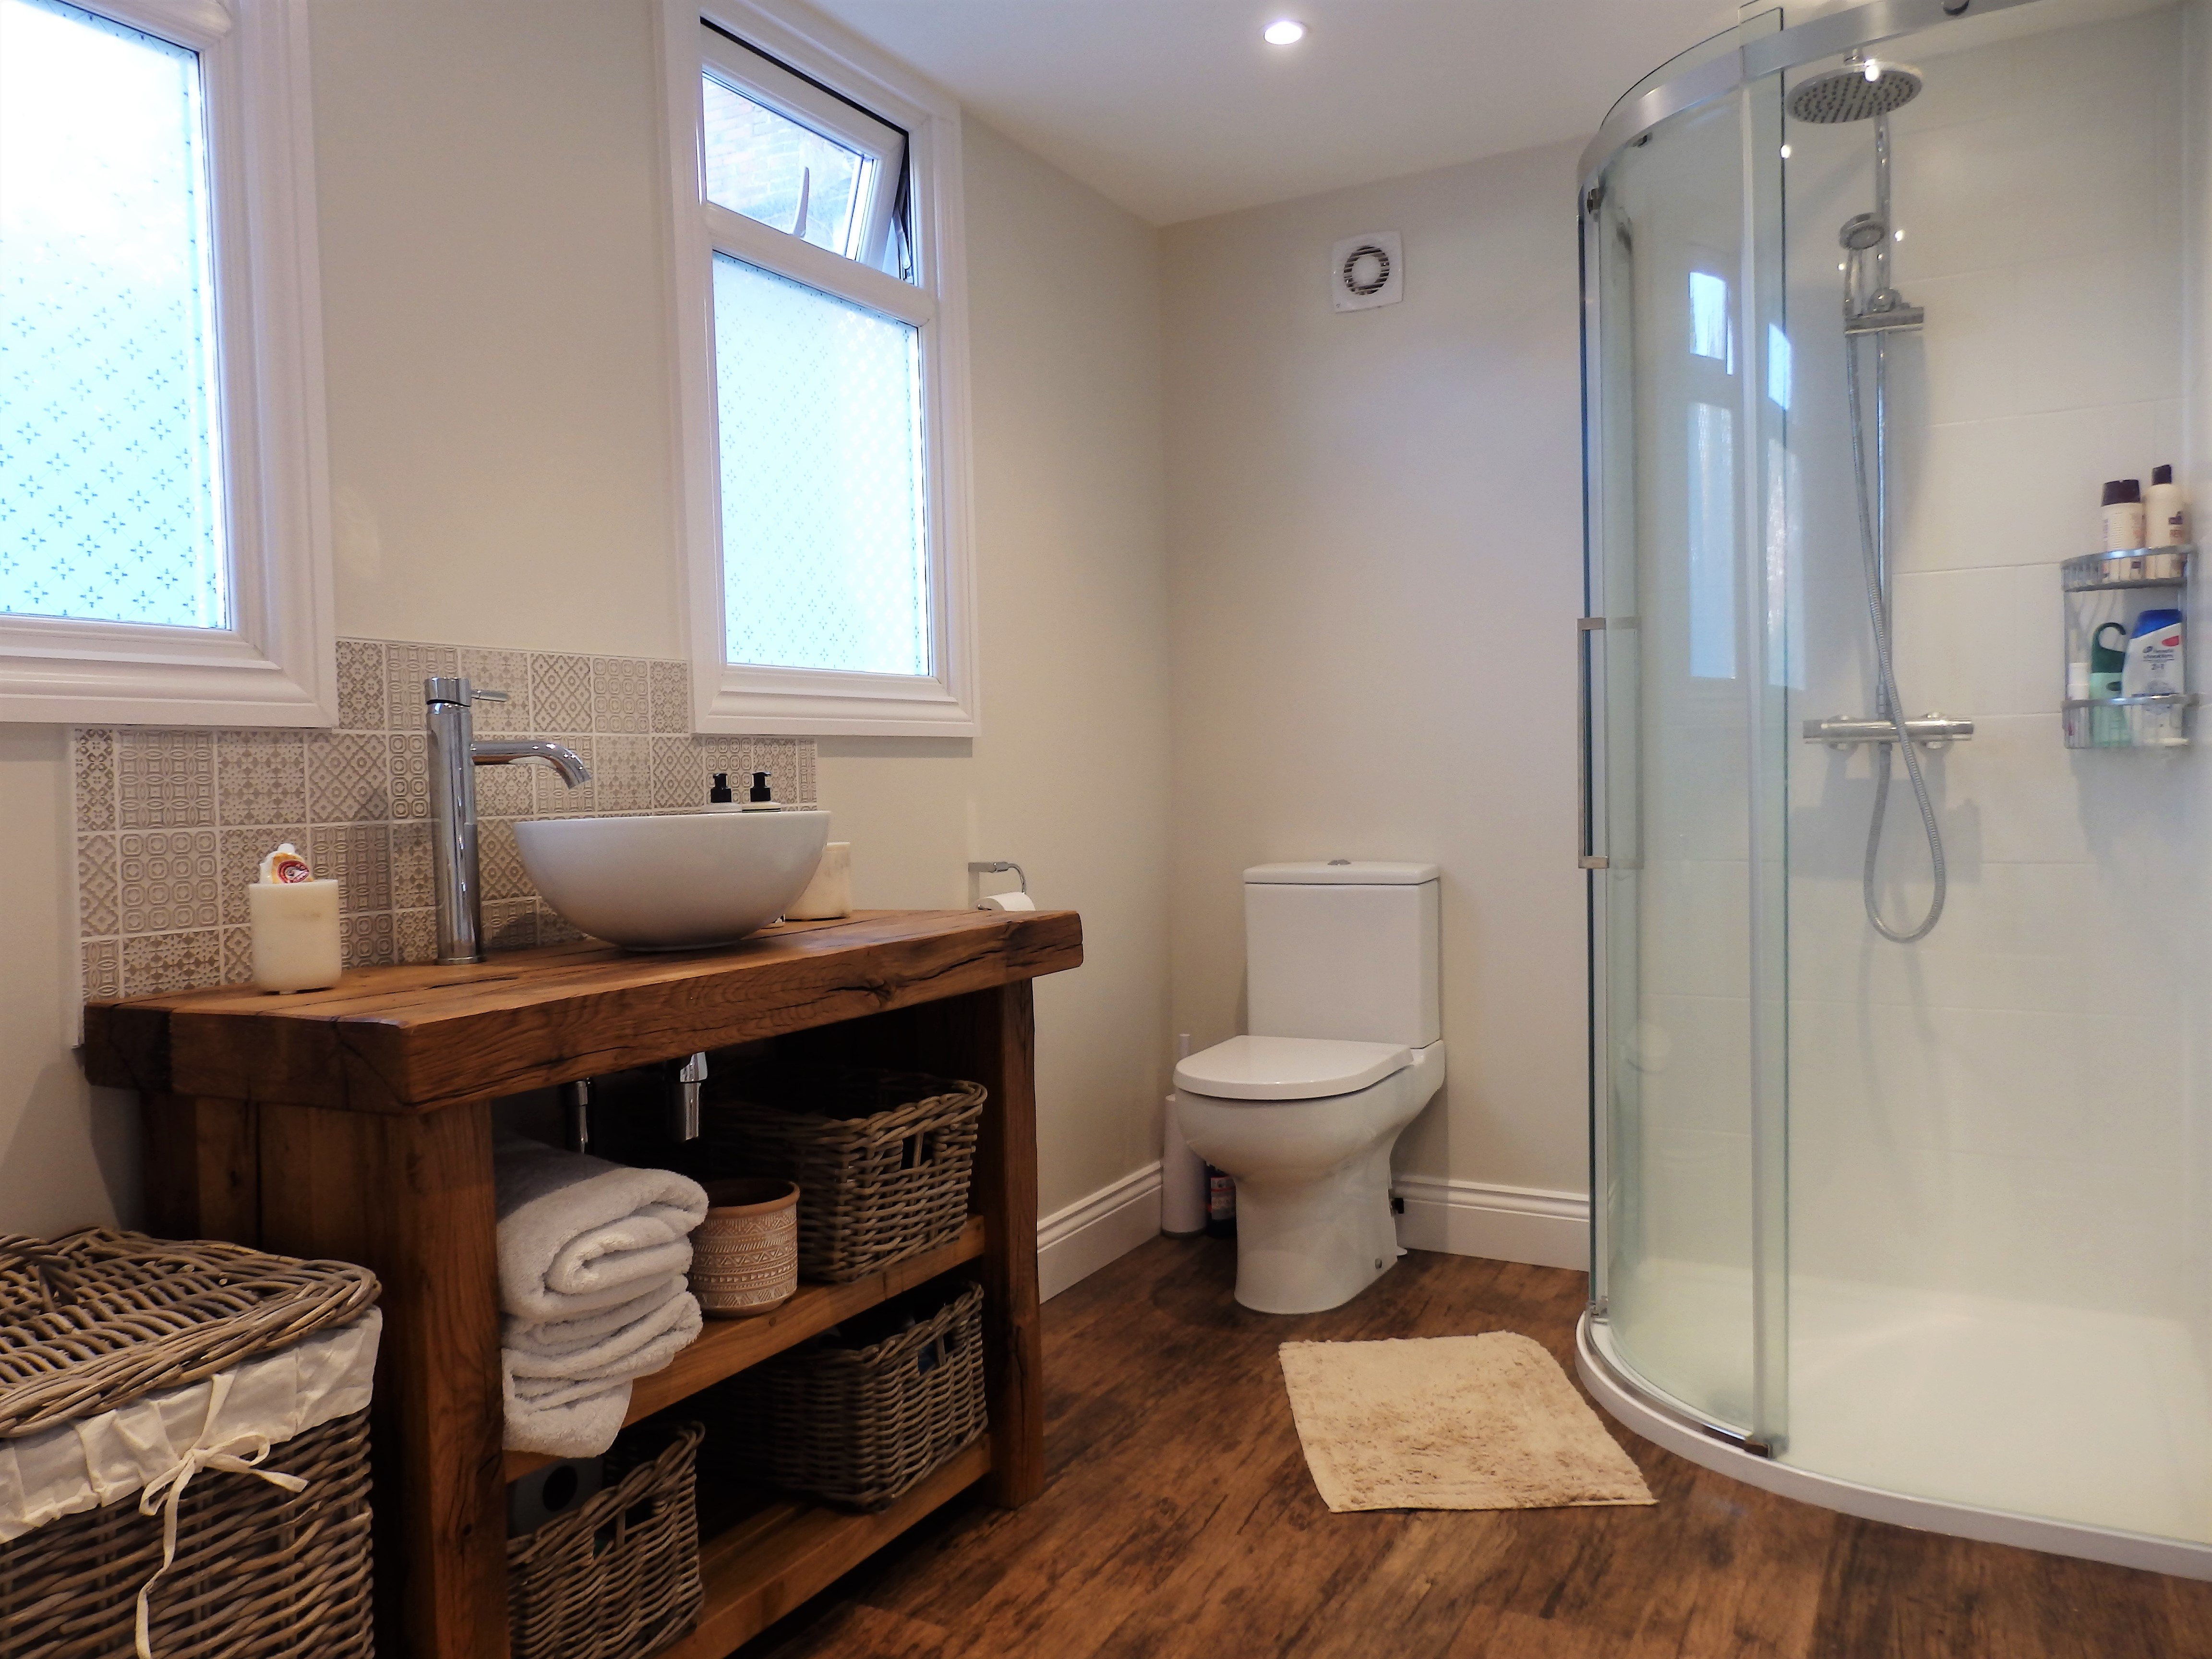 The bathroom all finished